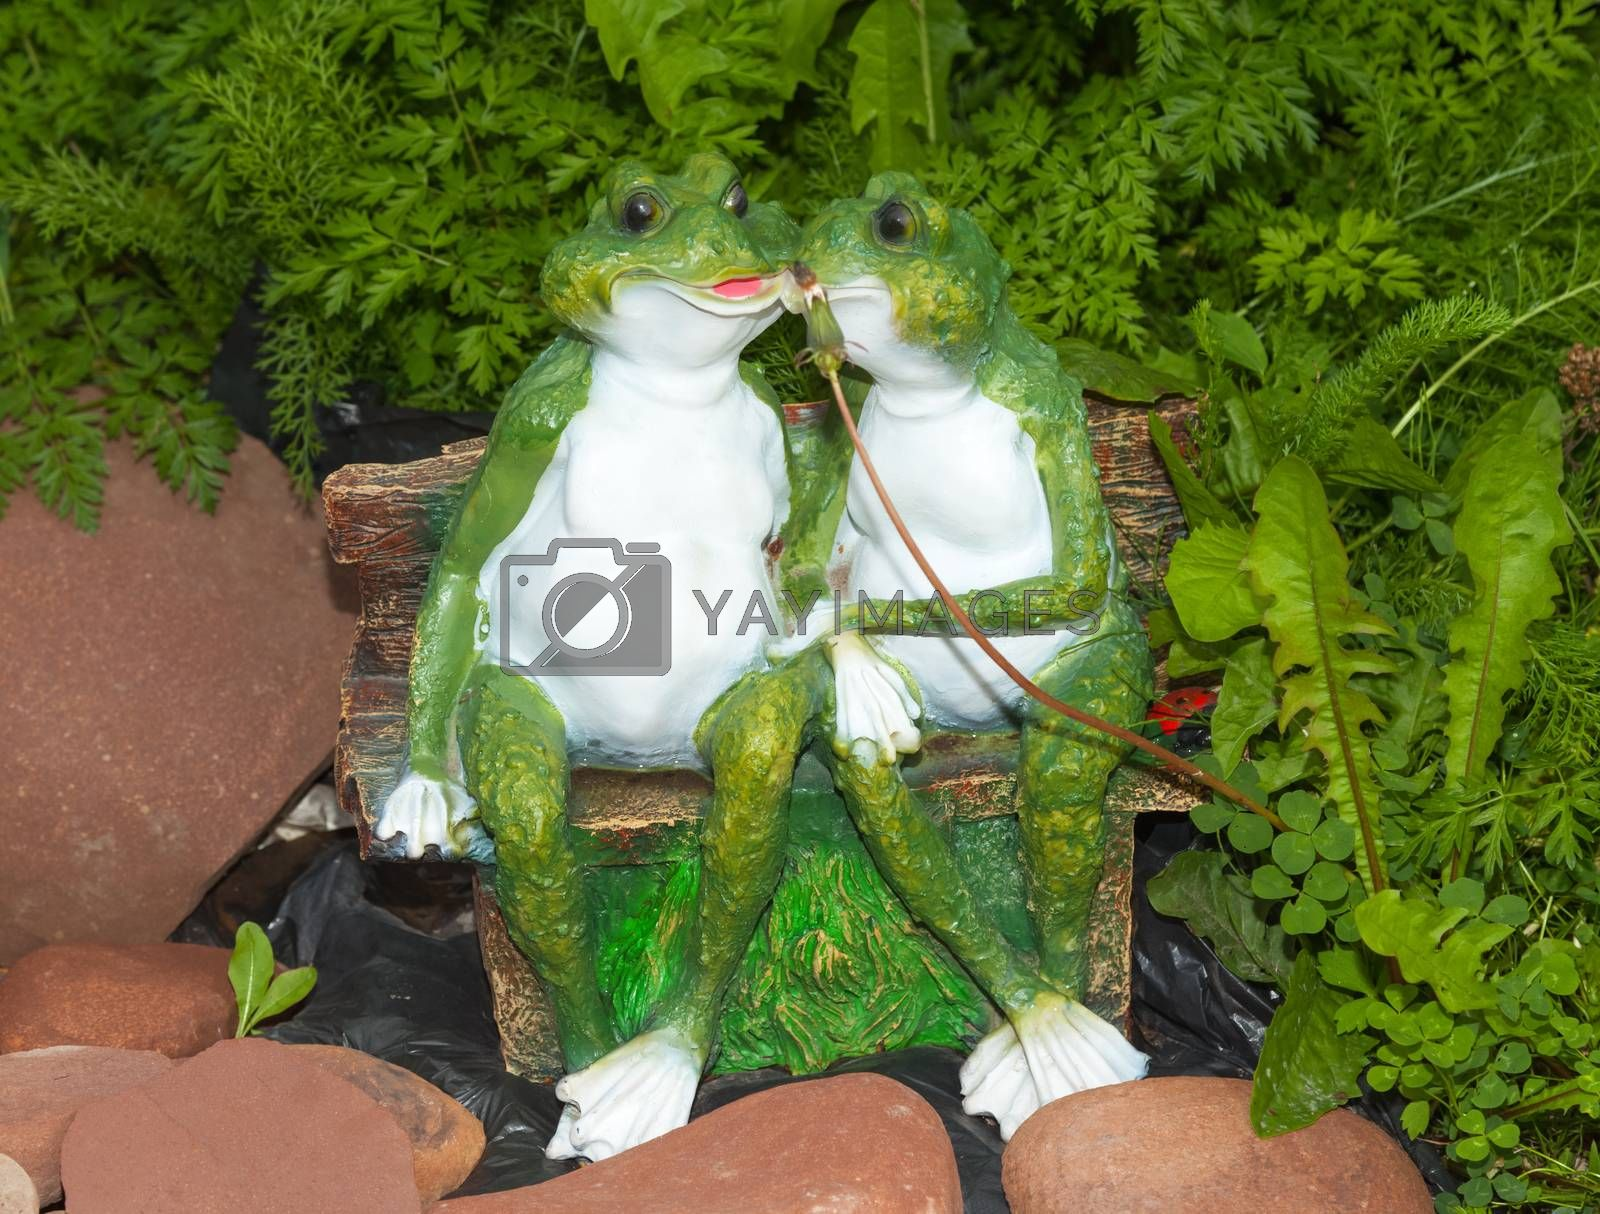 Two green ornament frog sitting on a bench near a stones in the tall grass